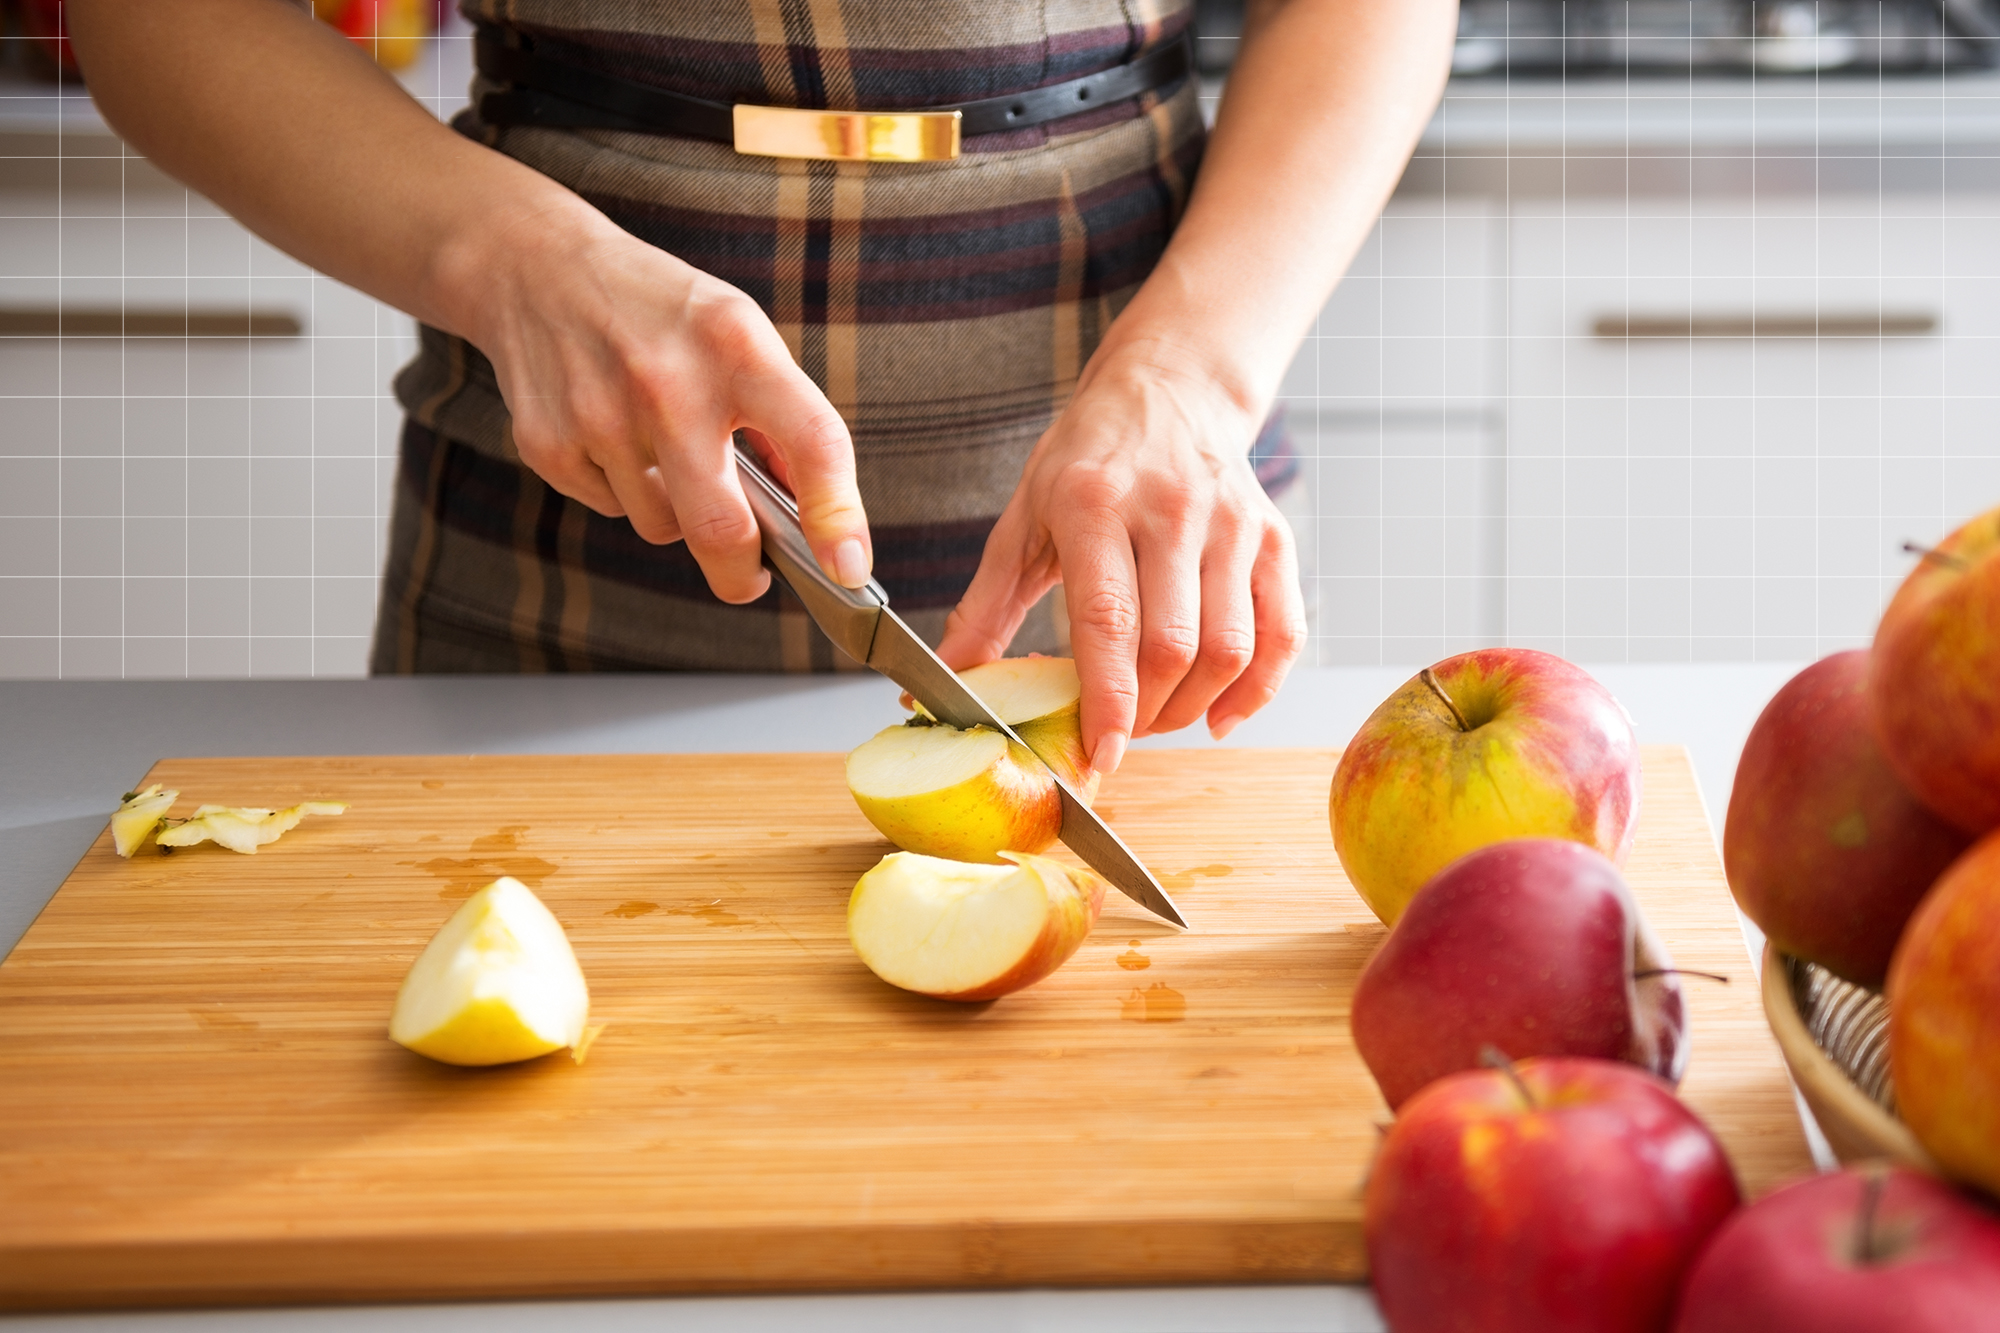 Woman's hands cutting apples on board